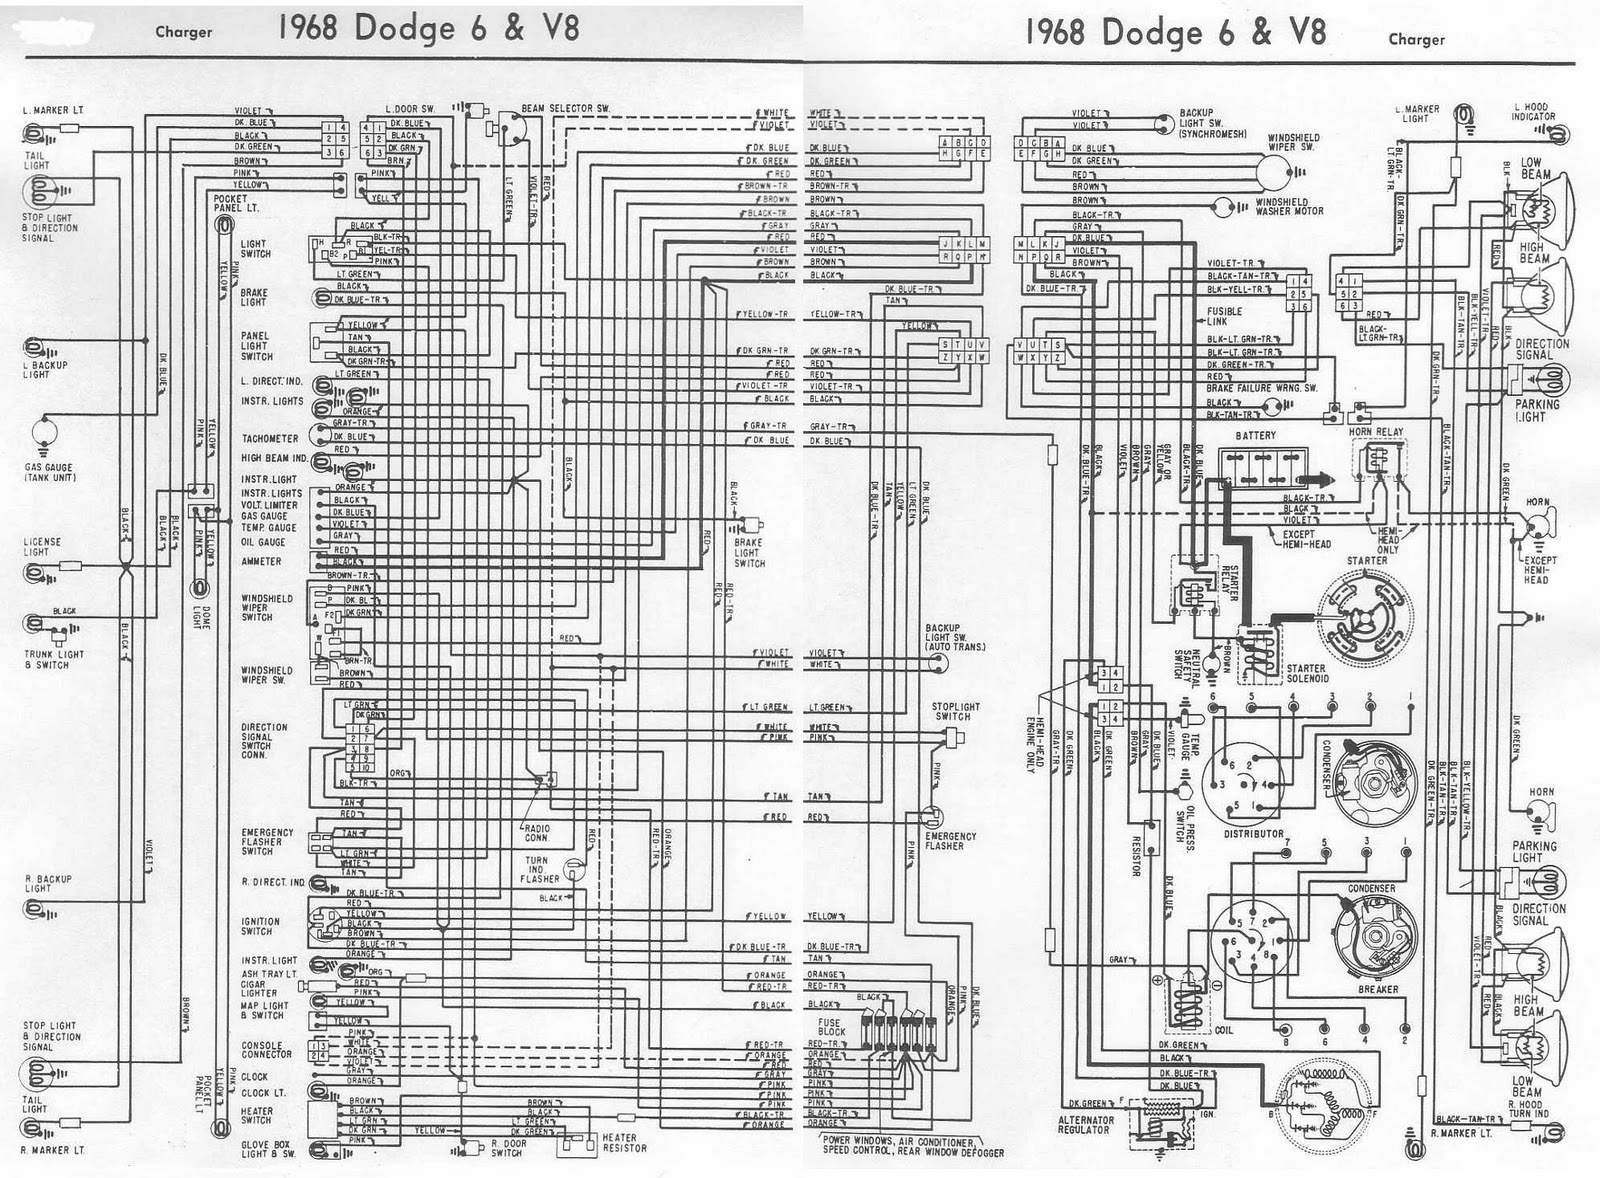 and charger 1971 complete wiring diagram all about wiring diagrams 1968 dodge wiring diagram wiring diagram data 1968 dodge wiring diagram